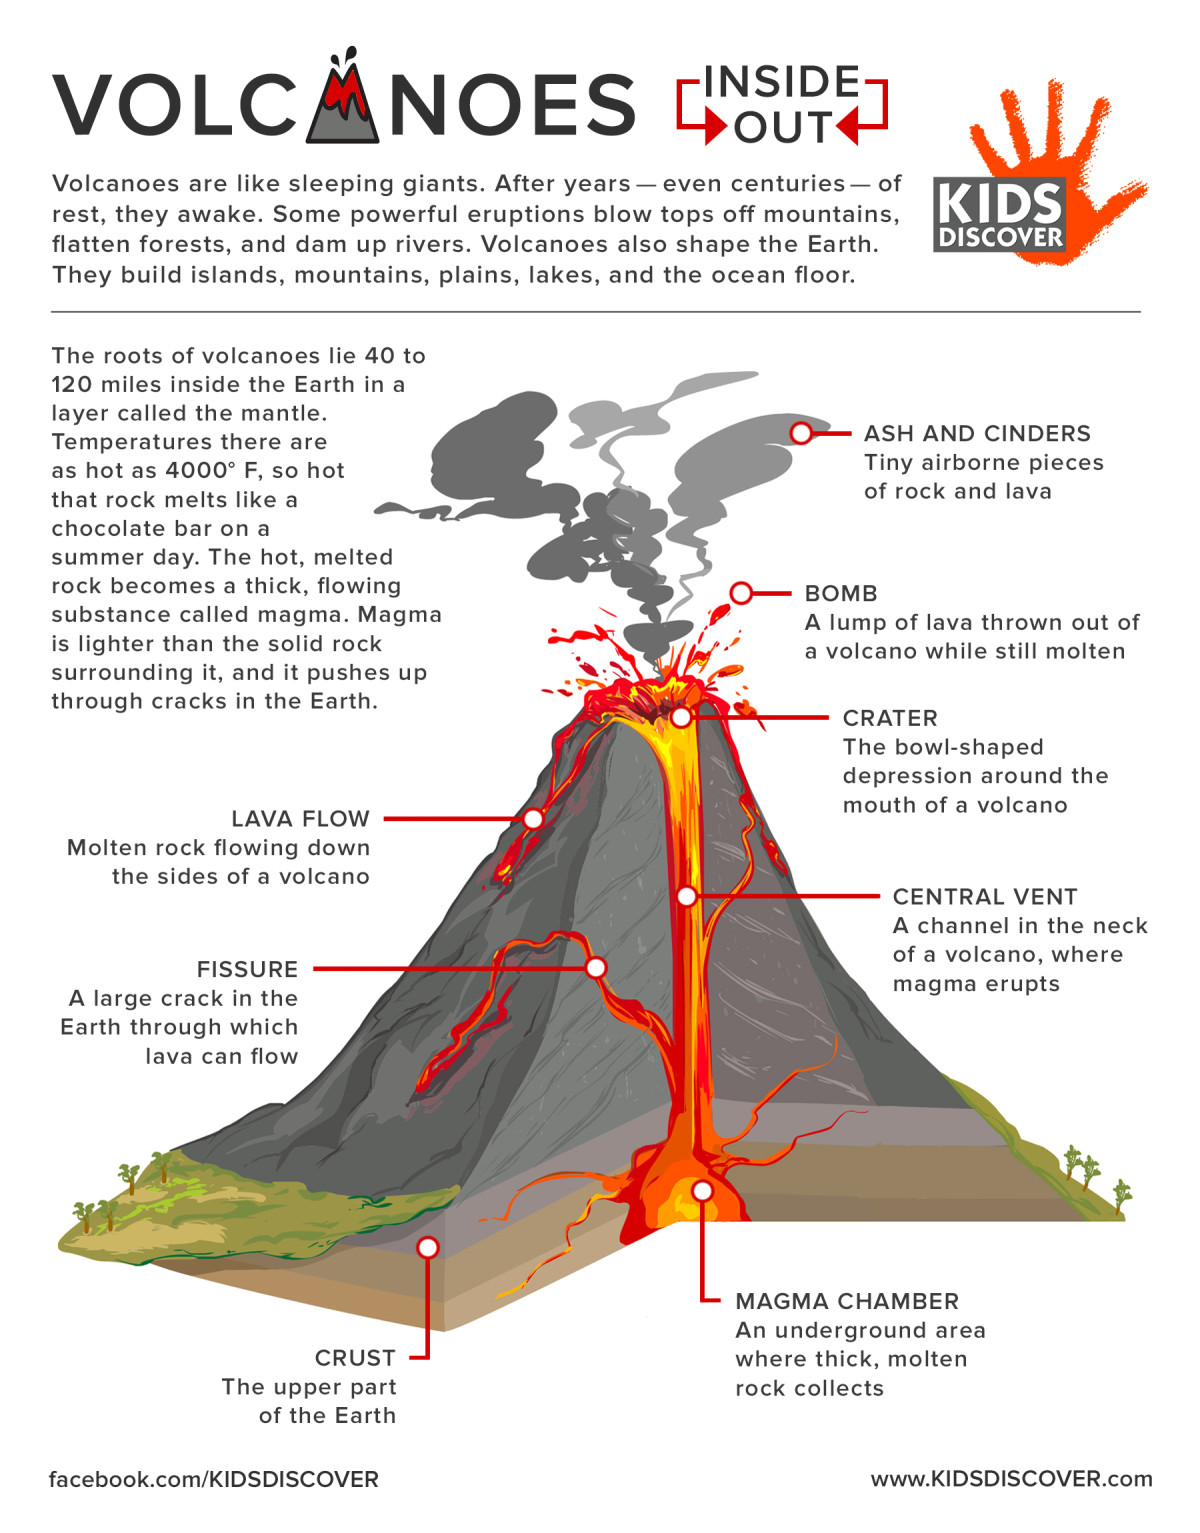 stratovolcano diagram with labels wiring for jeep grand cherokee 2002 infographic volcanoes inside out kids discover